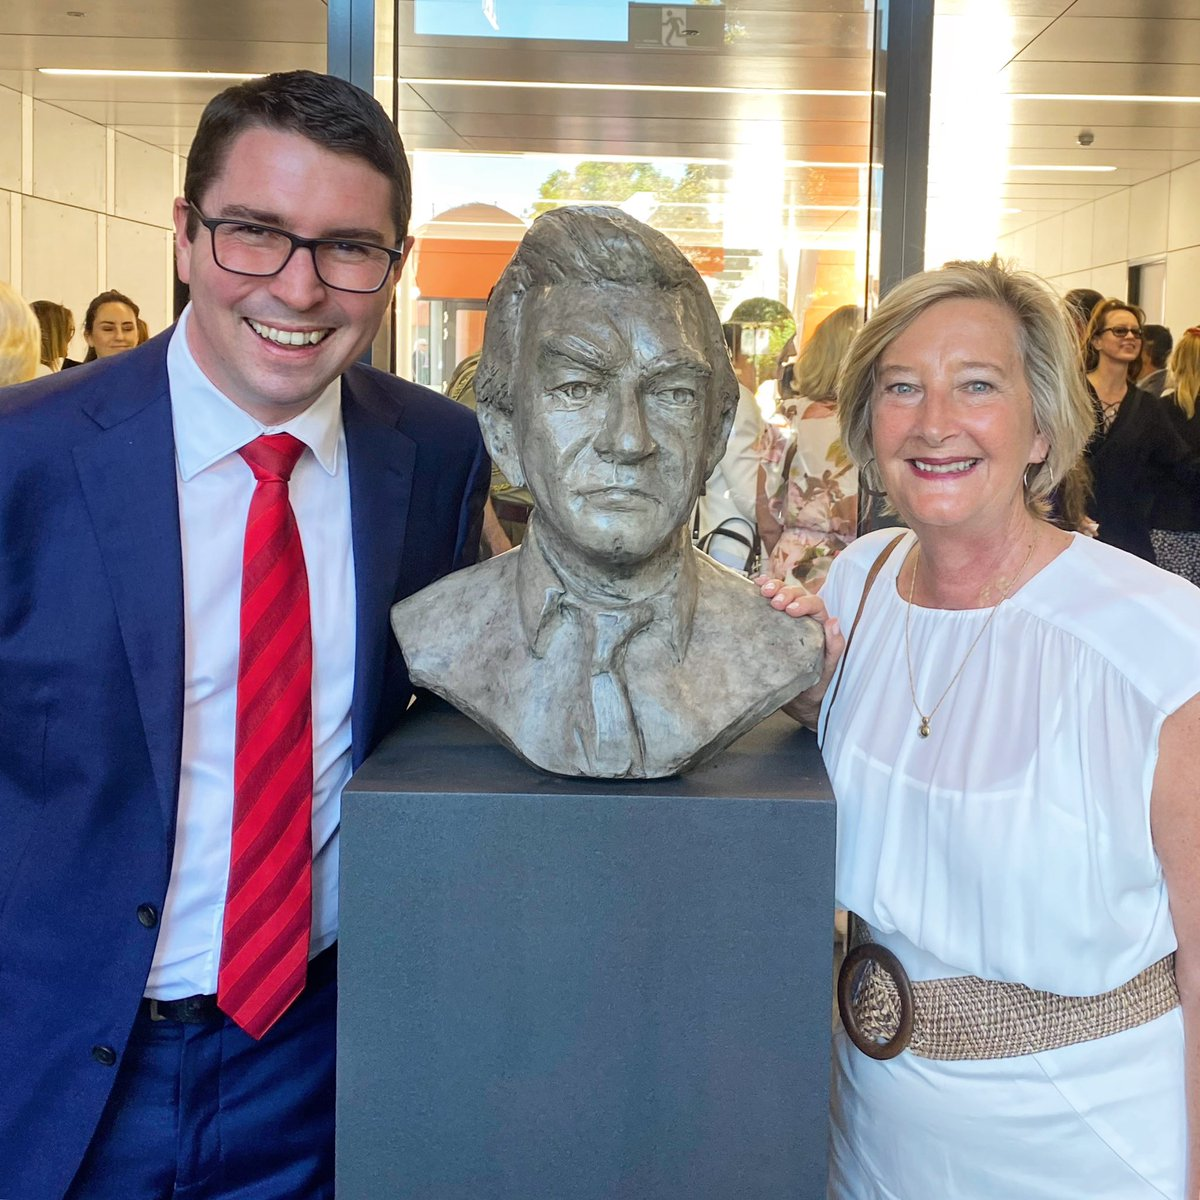 Patrick Gorman MP (Federal Member for Perth) with Jill Saunders and the bust of Bob Hawke by Jon Tarry.